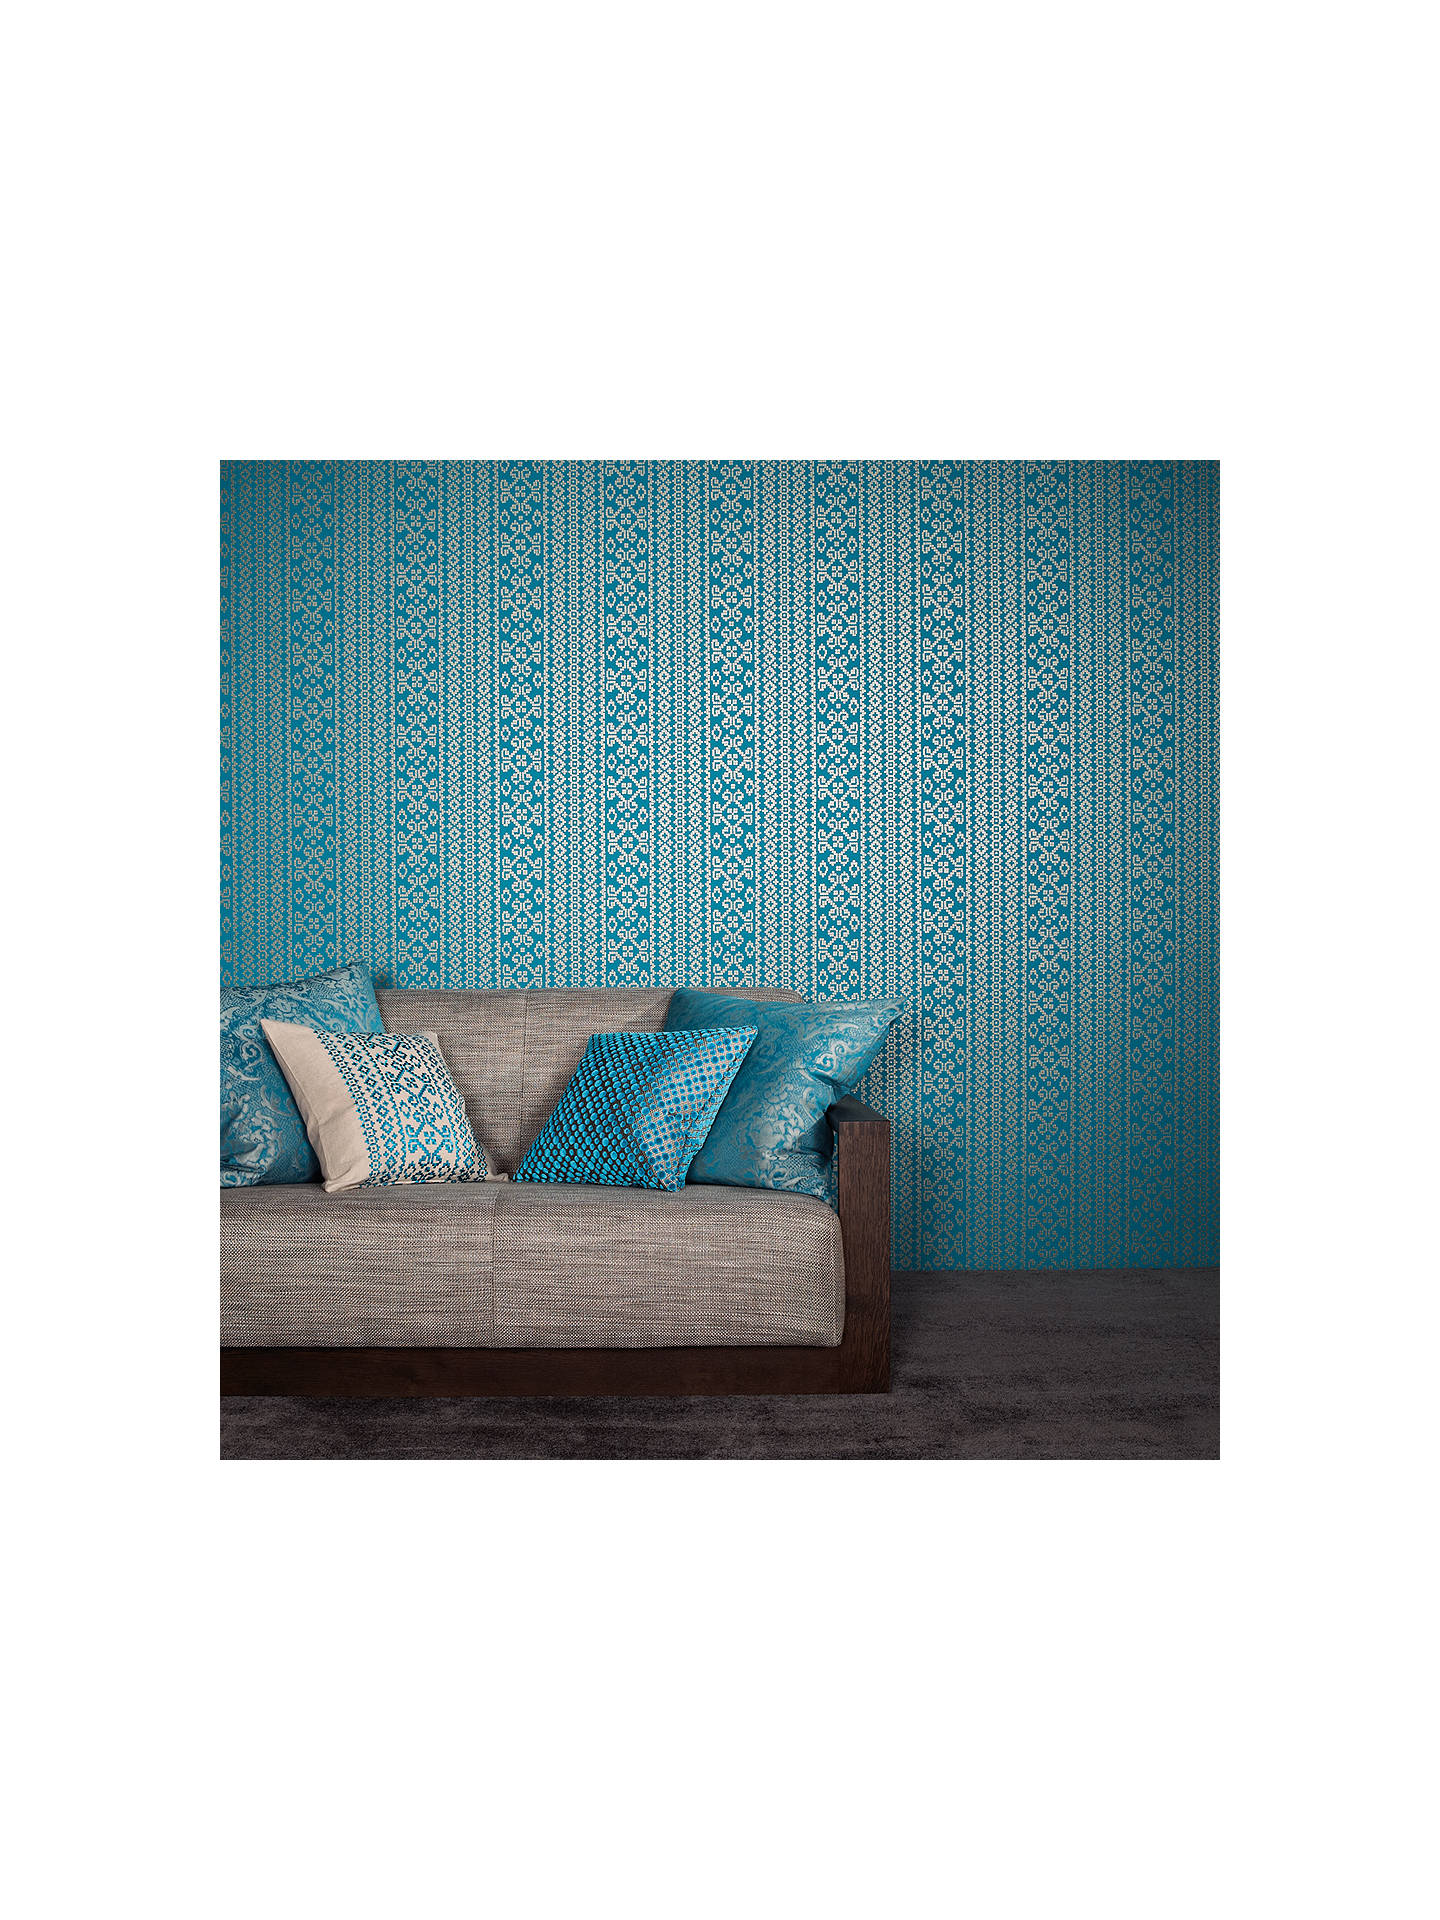 Buy Black Edition Kasbah Paste the Wall Wallpaper, Blue W366/04 Online at johnlewis.com